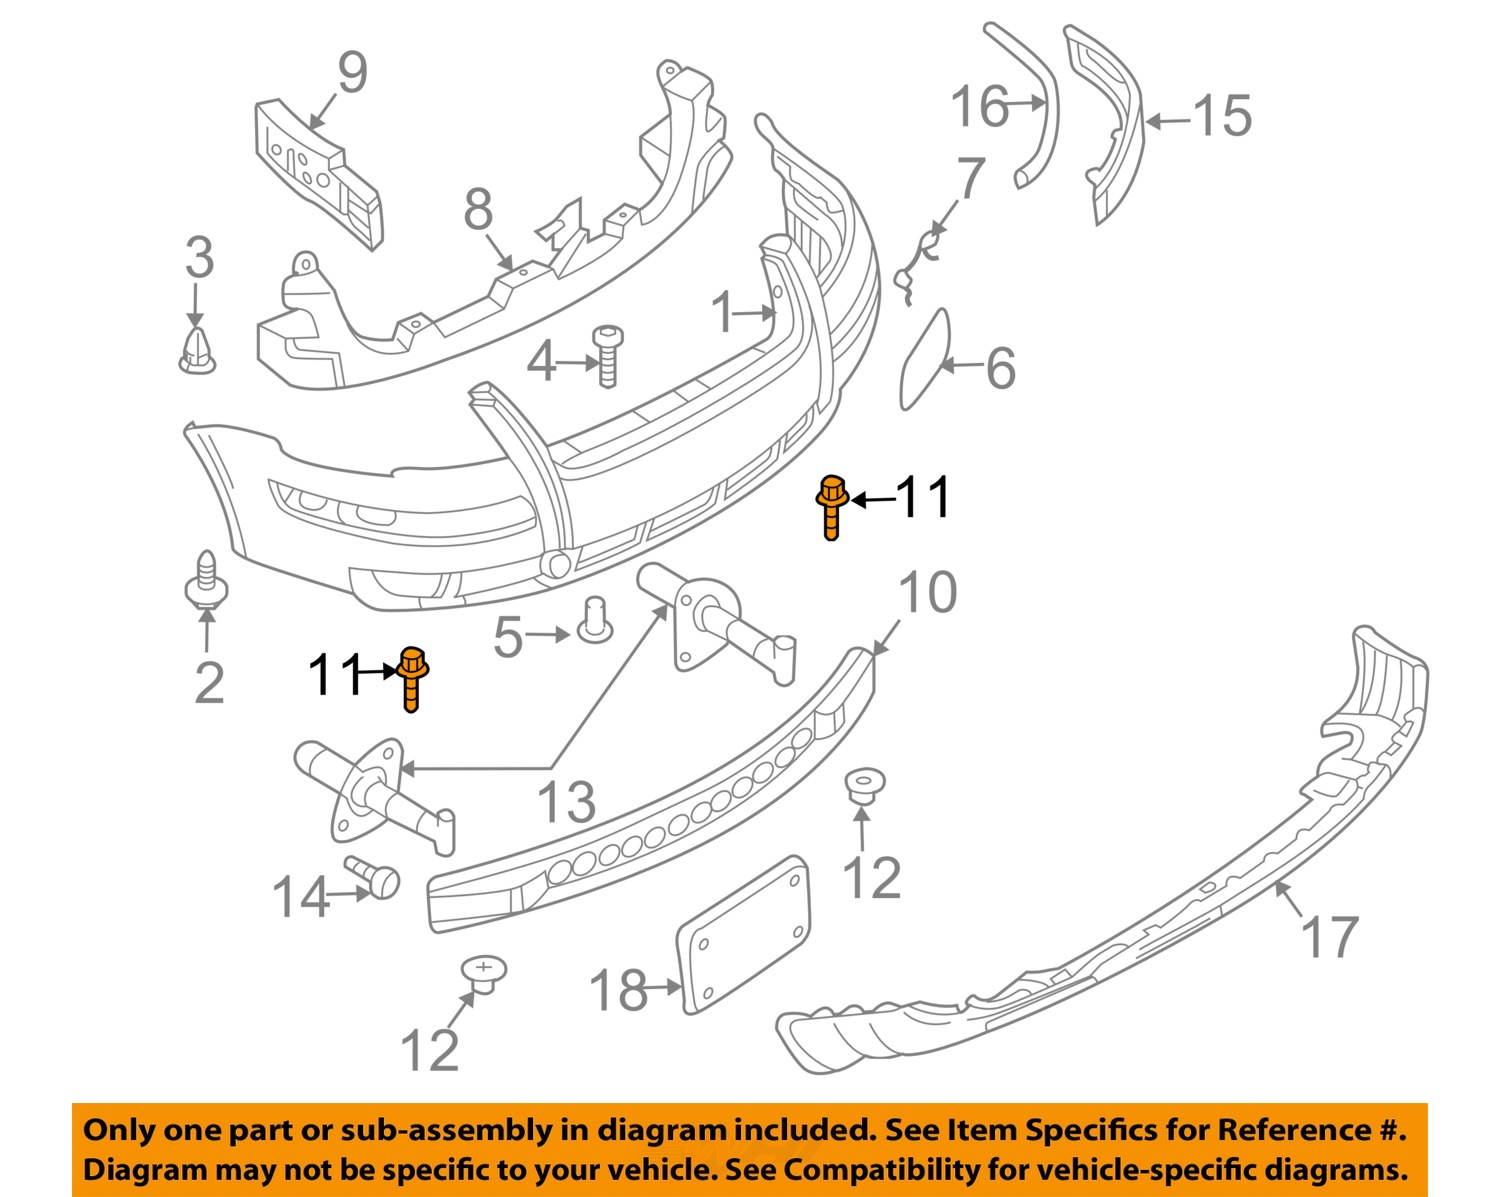 hight resolution of  11 on diagram only genuine oe factory original item